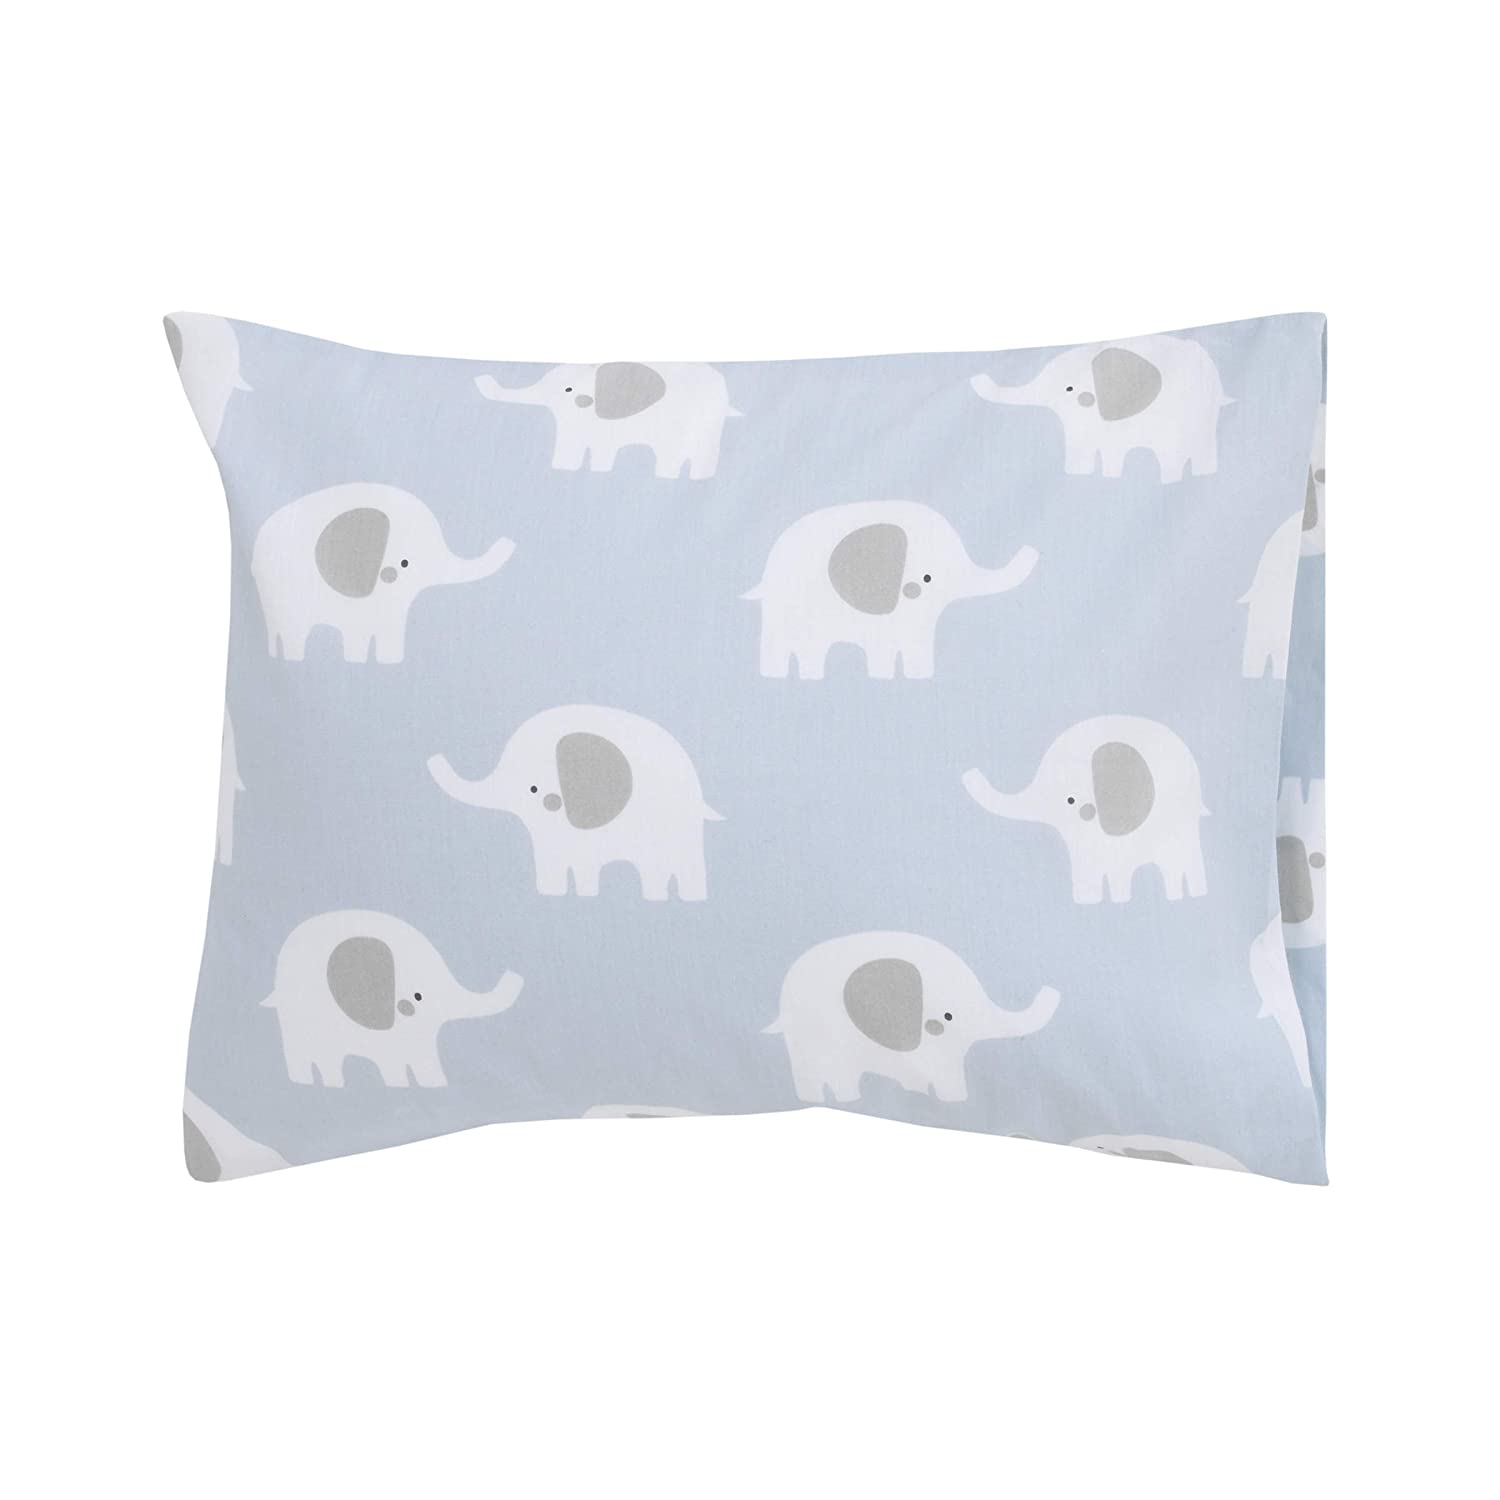 "Sumersault Soft Toddler Travel Pillow Set - Blue and Grey Elephants 13"" x 10"" x 4.5"" Pillow and Pillowcase Extra Soft Yet Supportive Perfect for Cars, Airplanes, Strollers or Any Travel"